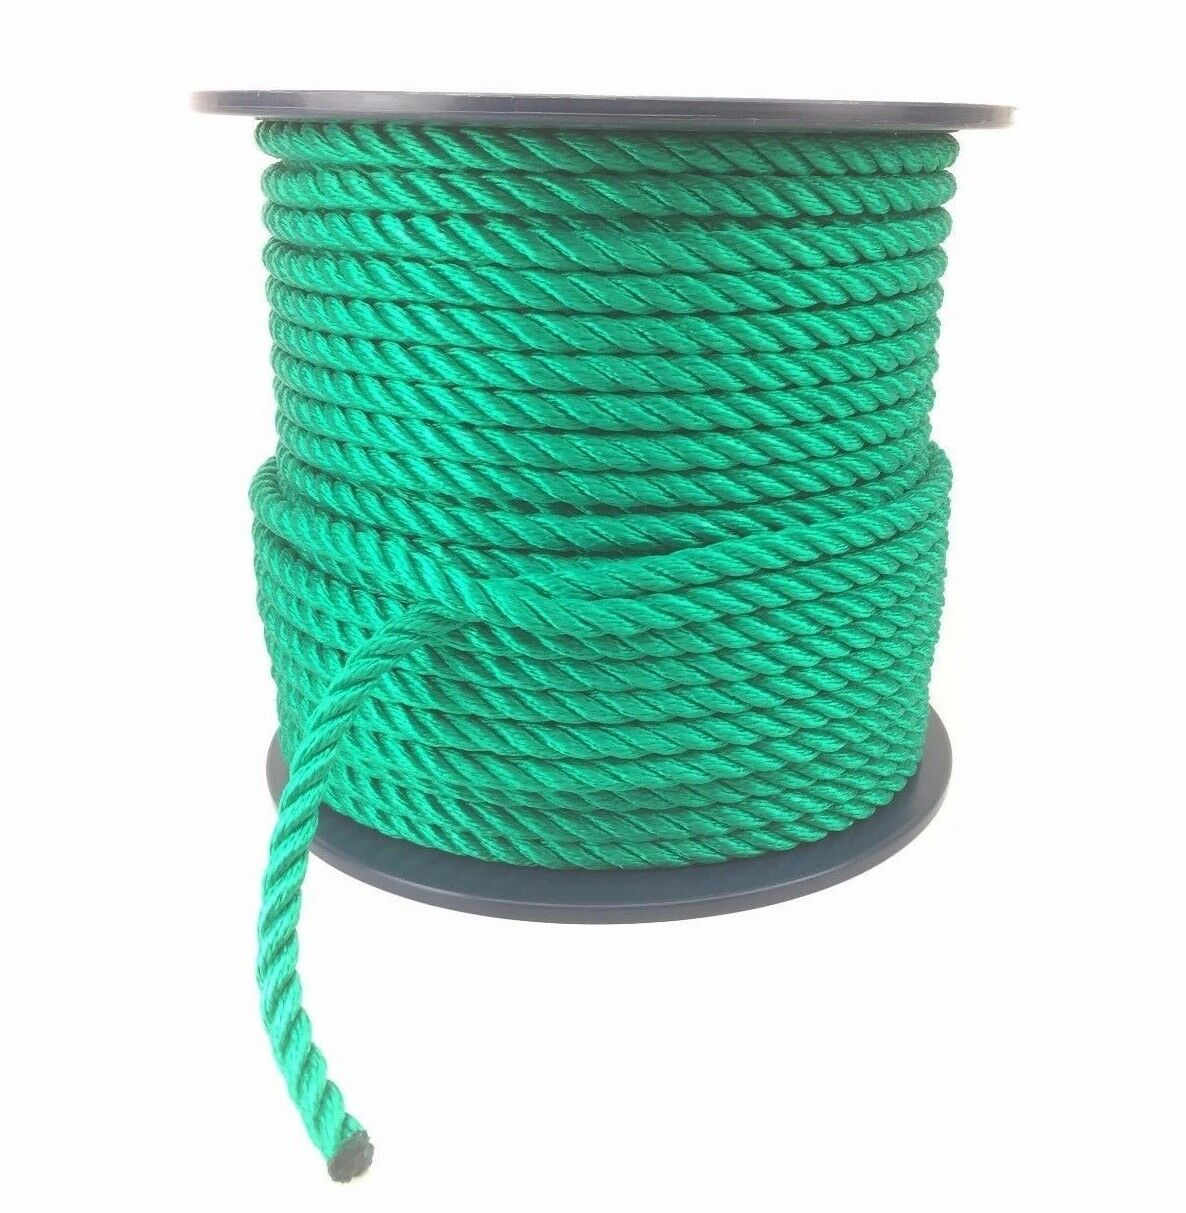 3 Strand Green Multifilament 8mm (Floating Rope) x 220 Metre Reel, Boats Yachts